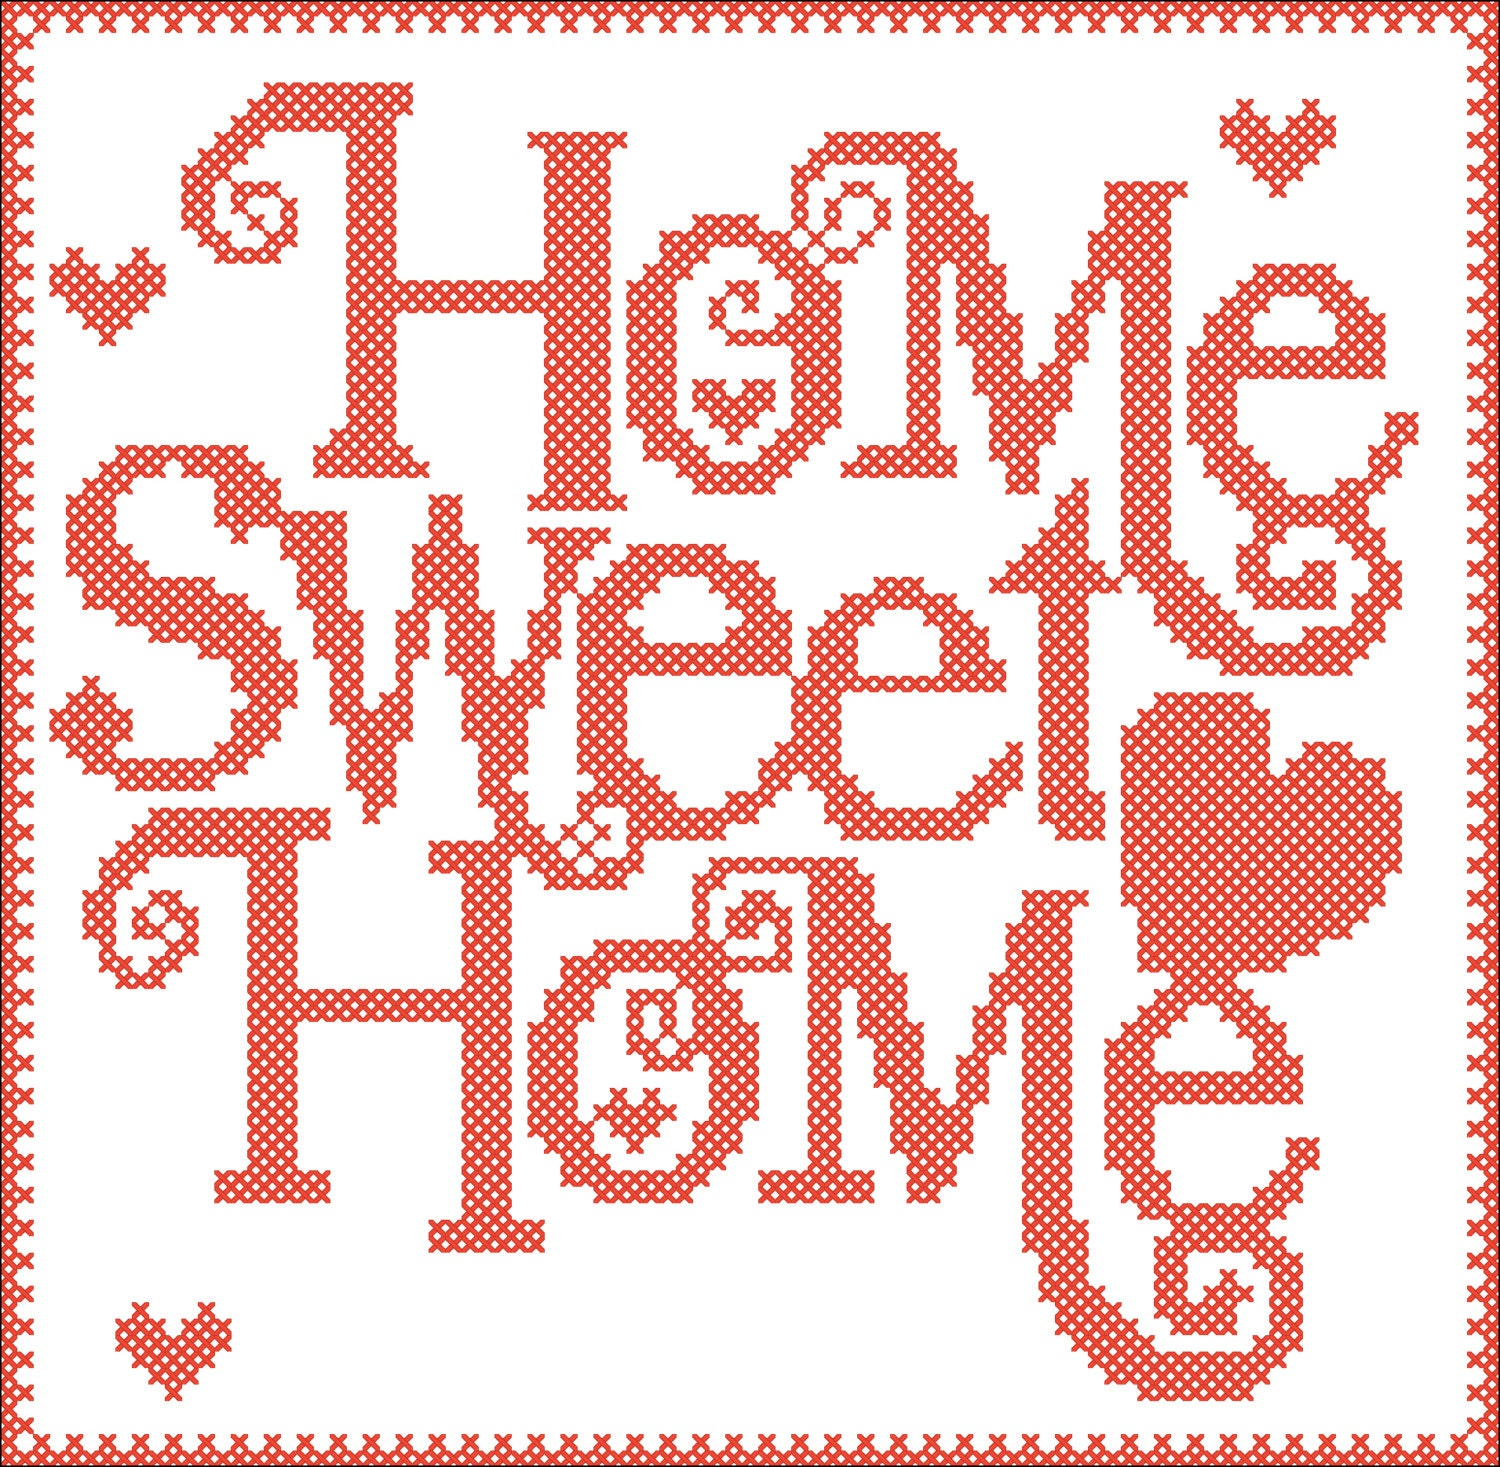 Free Software For You Free Download Sweet Home 3d: BOGO FREE PDF Home Sweet Home Cross Stitch Pdf Pattern